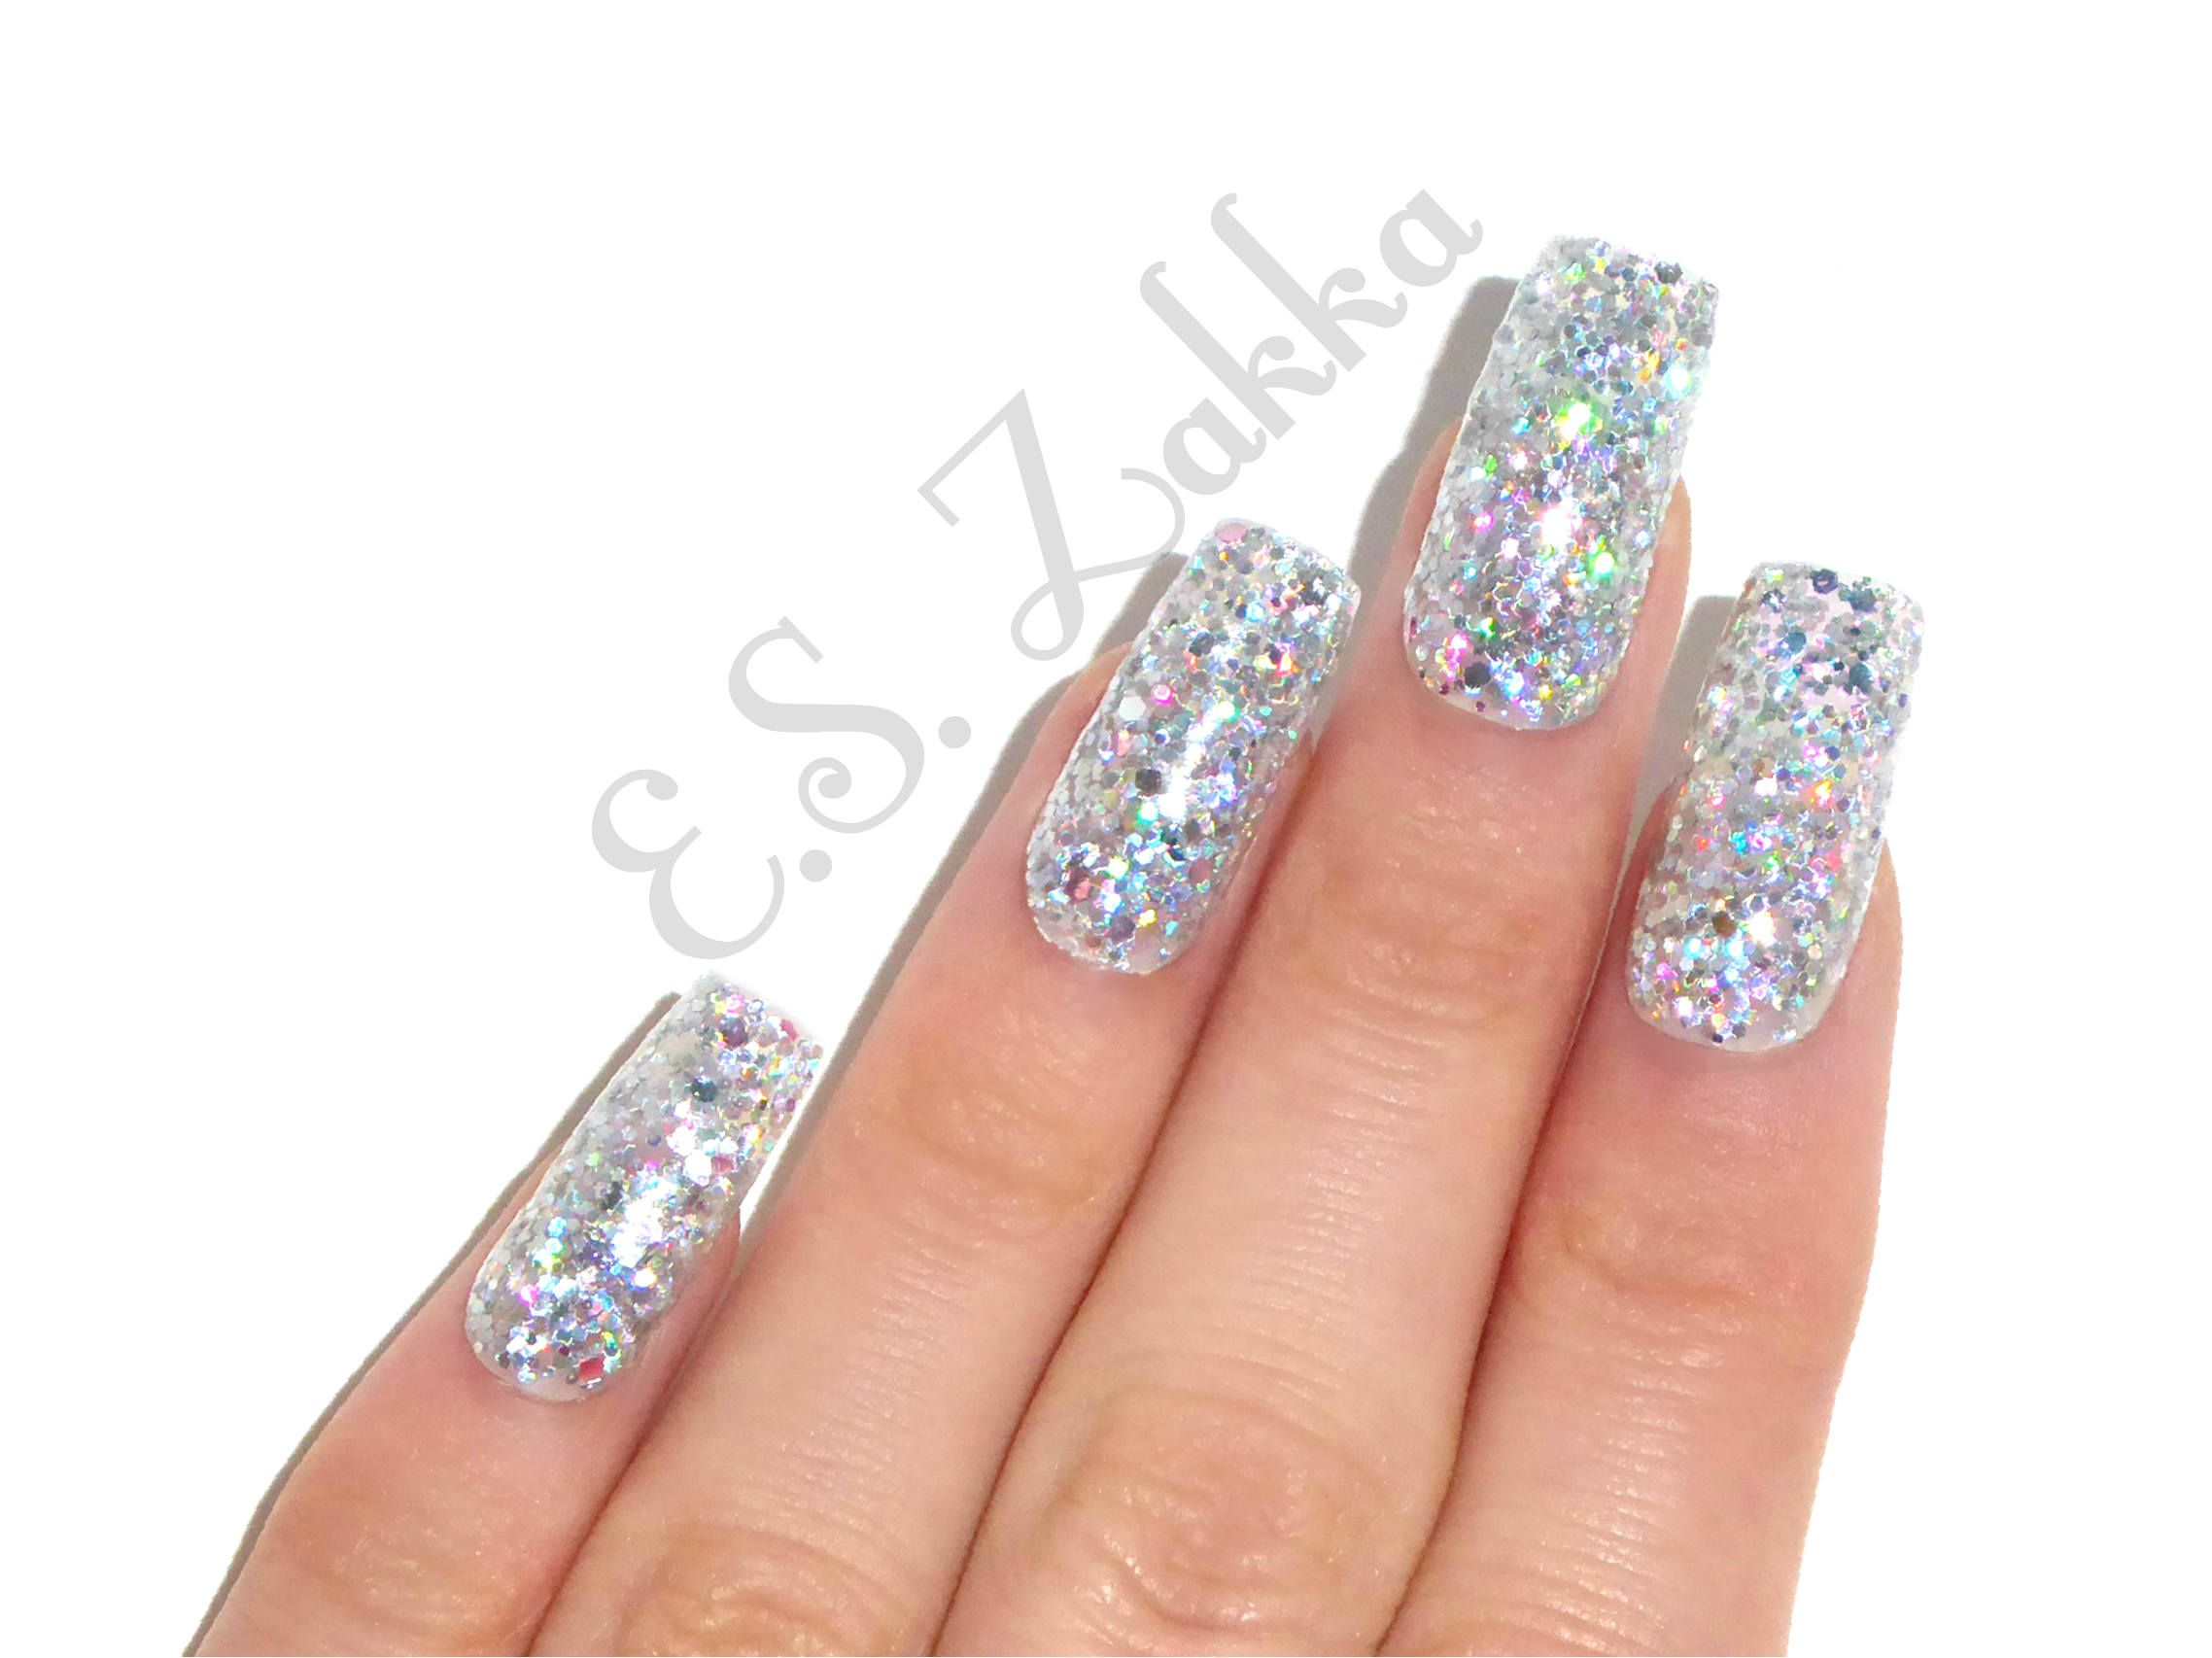 Holographic Glitter Gel Nails / Fake nails, press on nails, nail ...